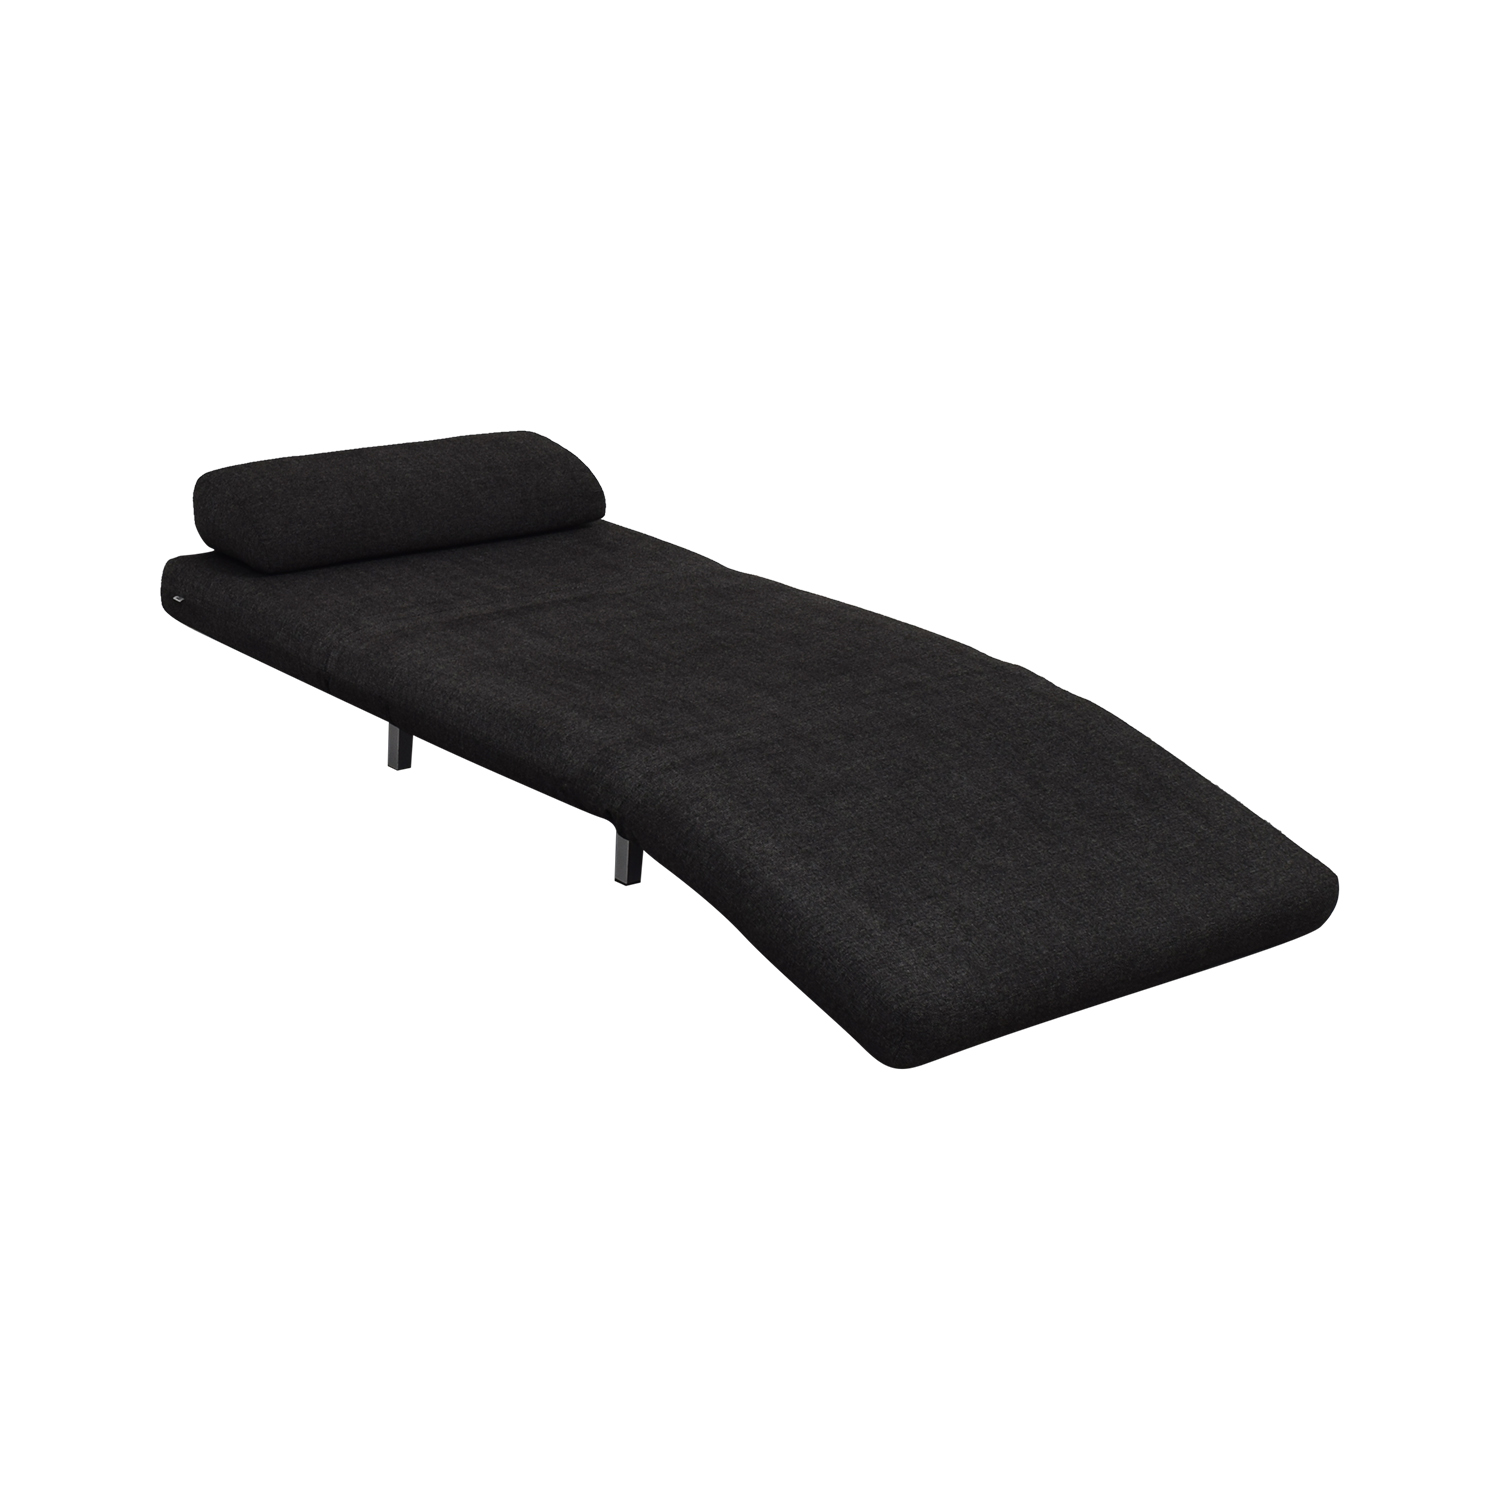 ABC Carpet & Home ABC Carpet & Home Fresno Convertible Lounger Chair on sale